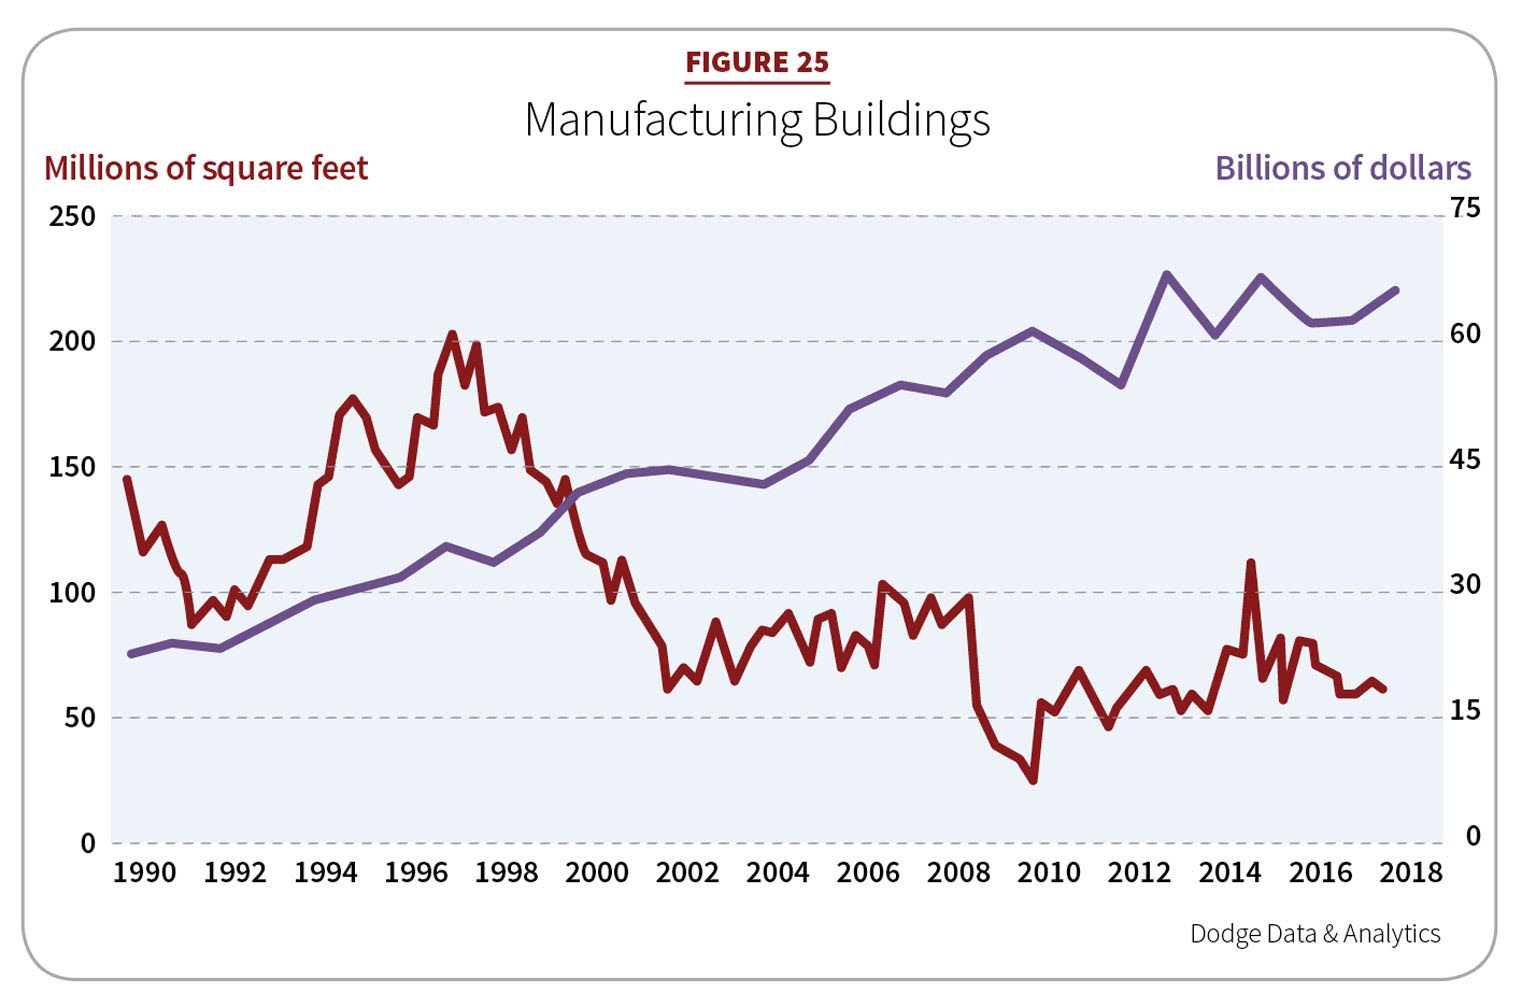 Figure 25: Manufacturing Buildings